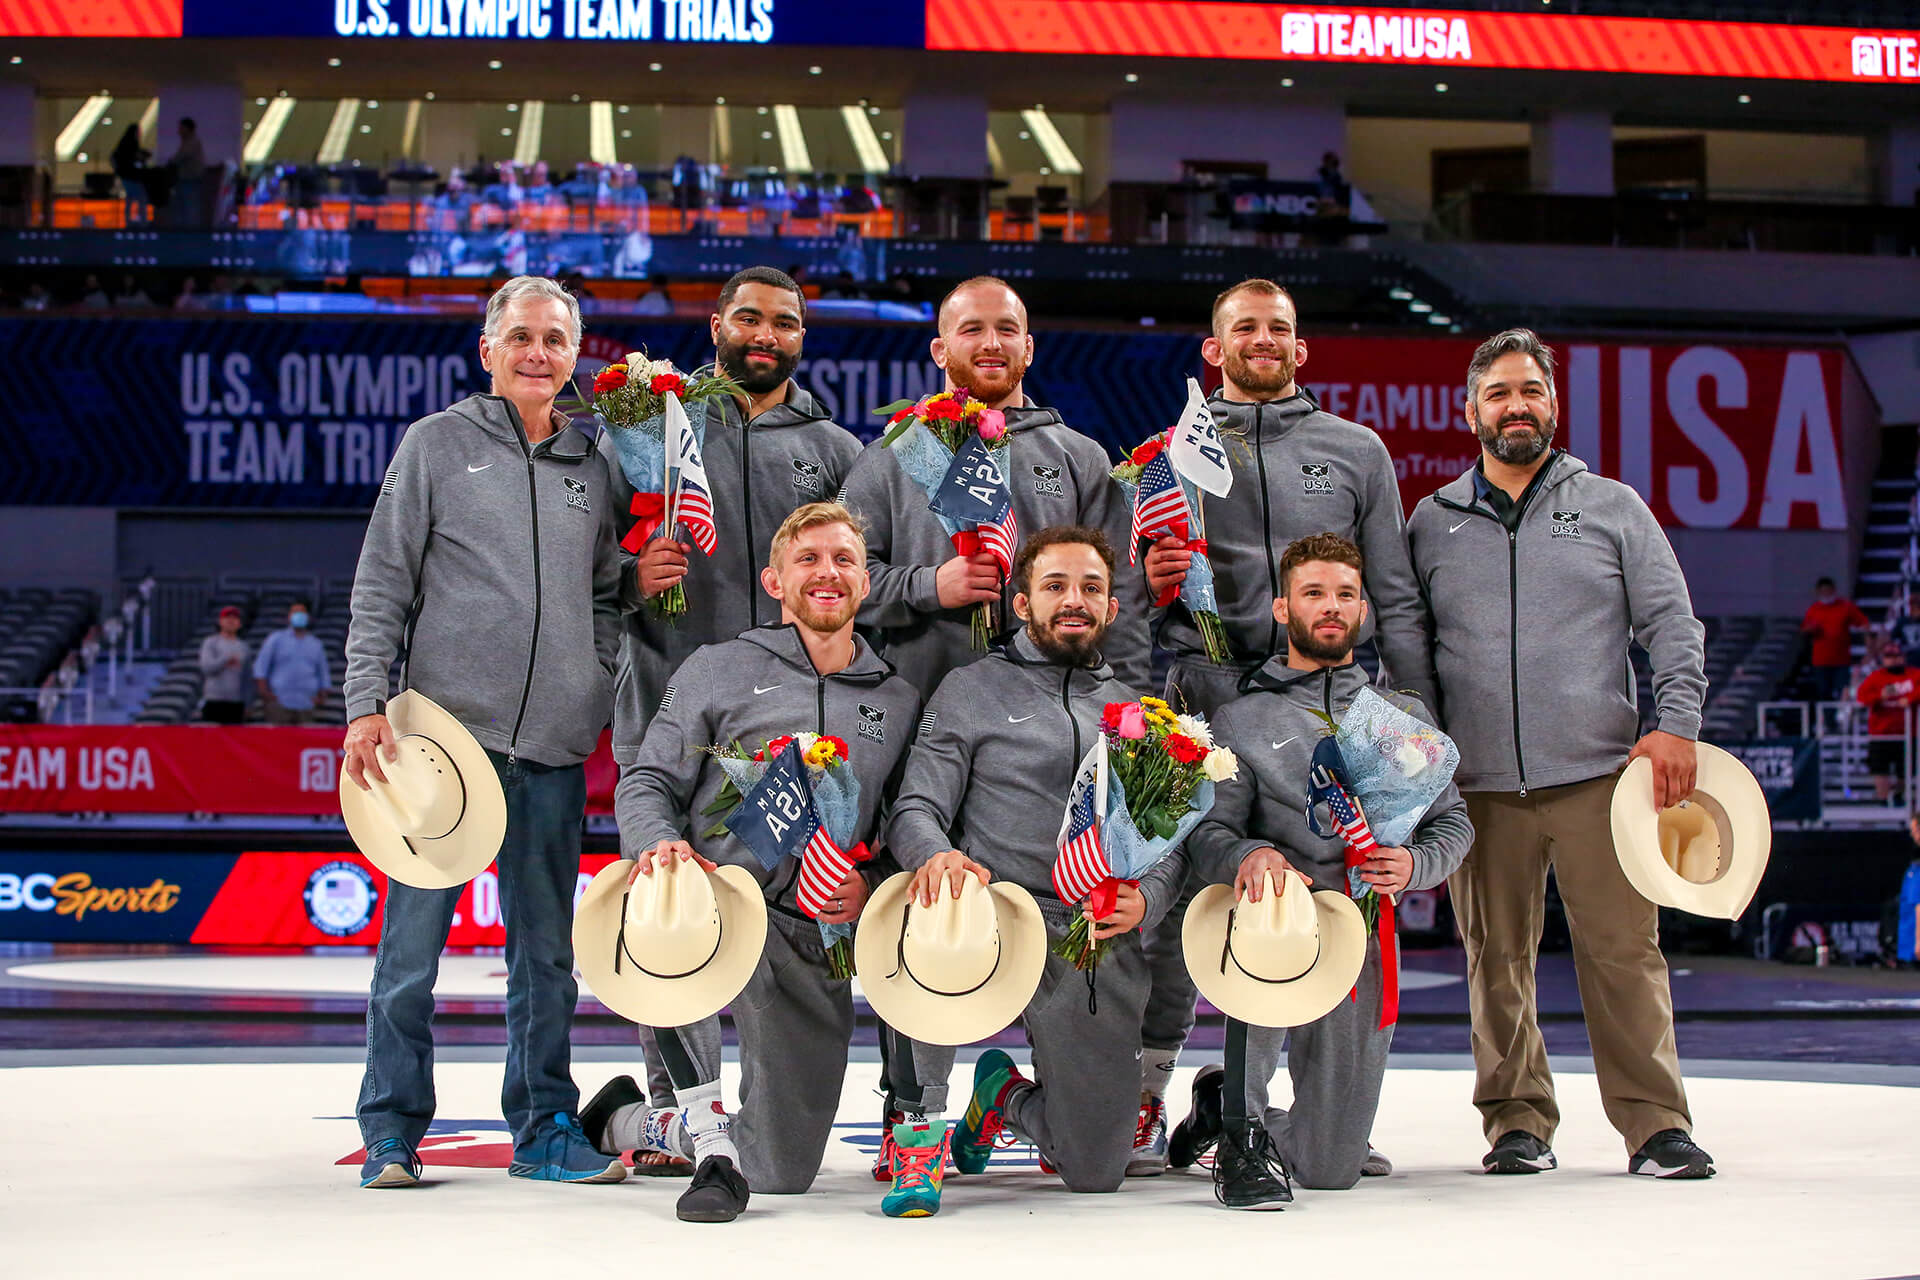 The USA Olympic wrestling team members and coaches